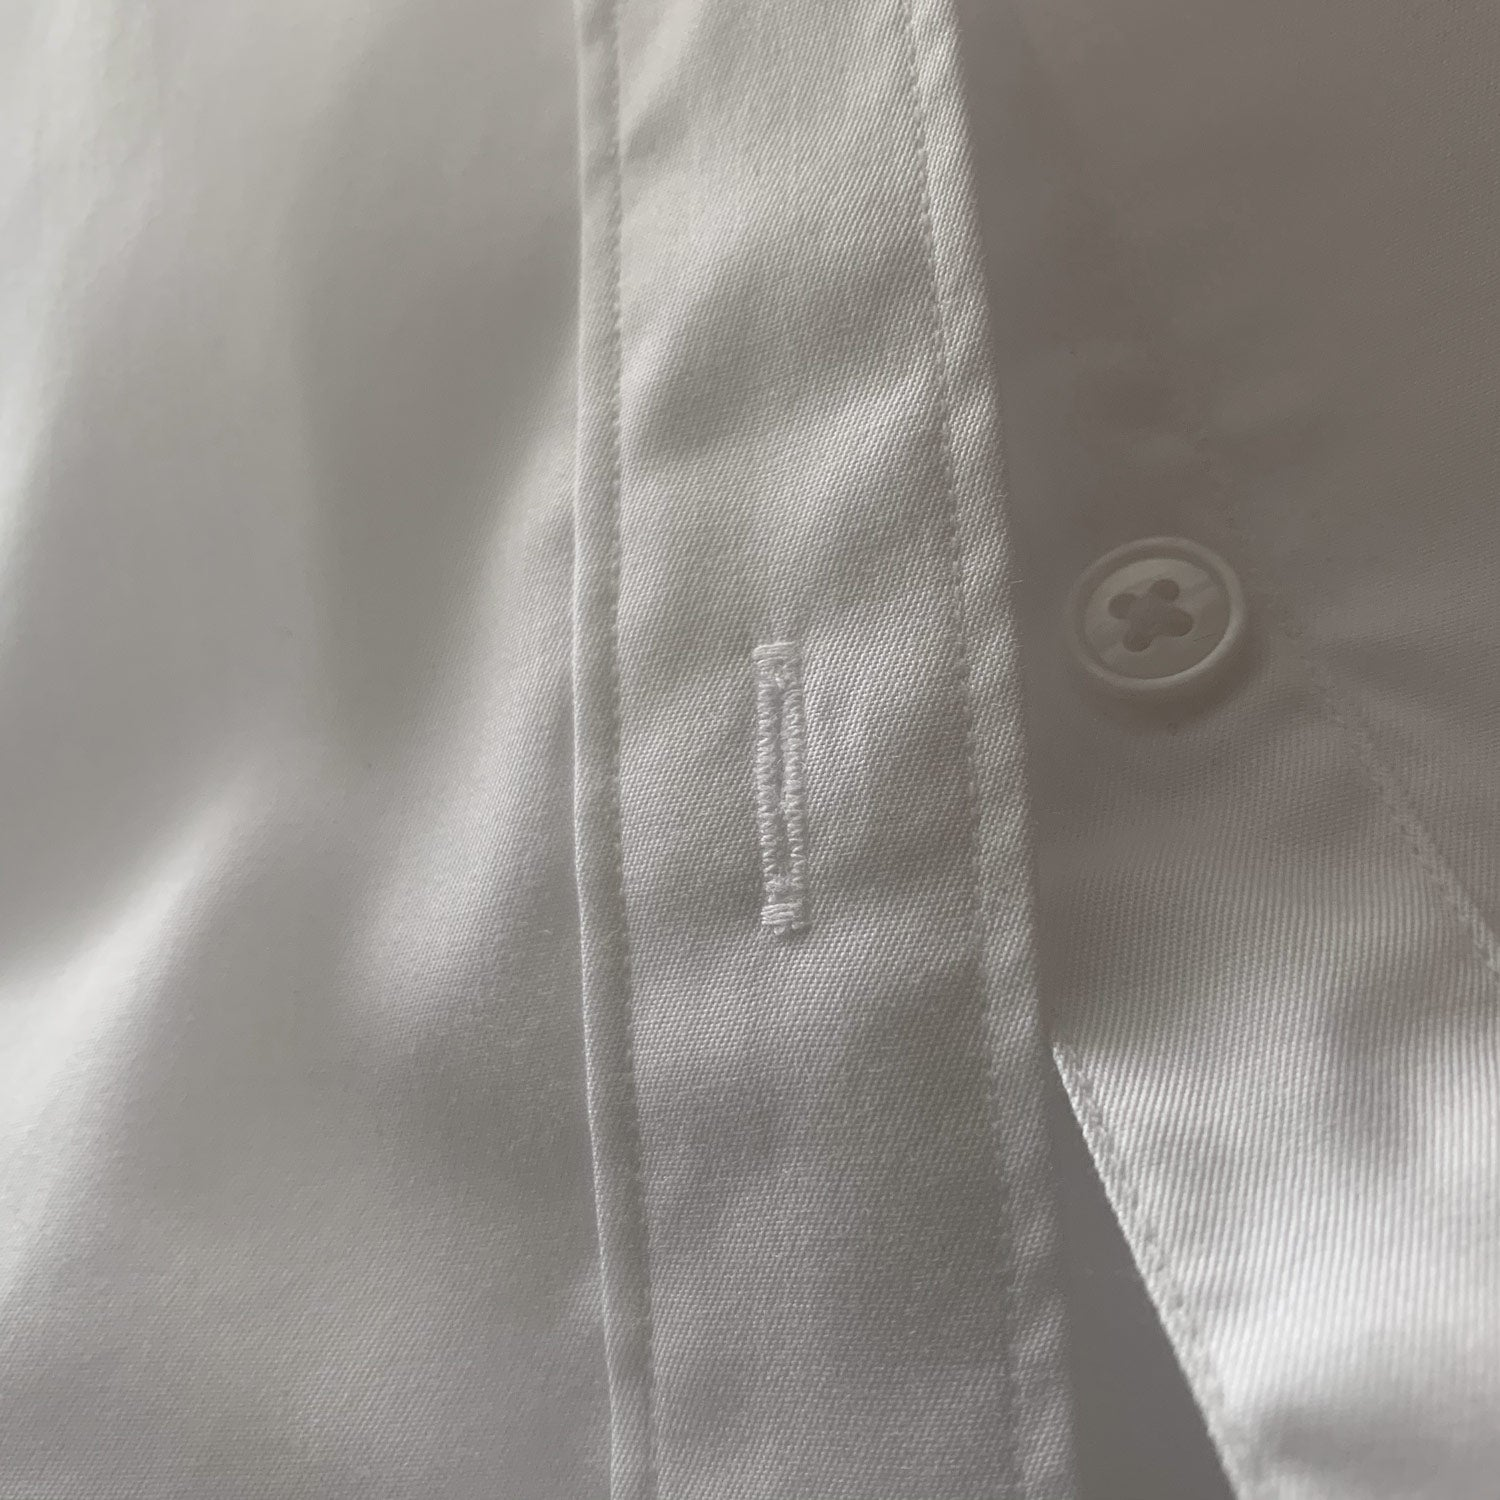 Clean finished button holes on mens shirts image